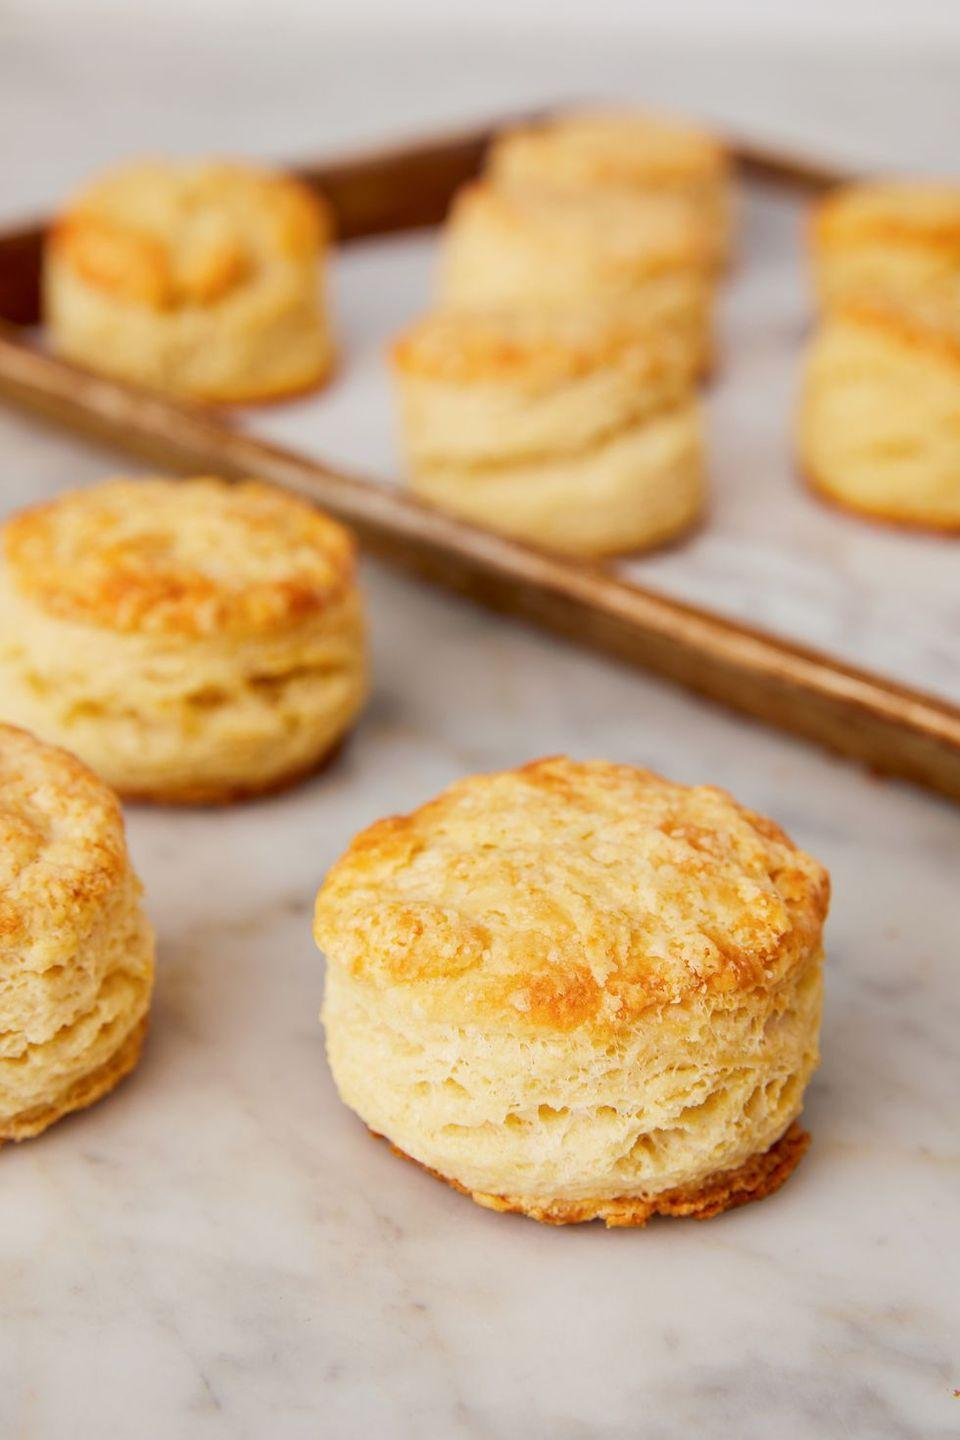 "<p>A few simple ingredients, when carefully mixed together, create a soft, pillowy roll of comfort.</p><p>Get the recipe from <a href=""https://www.delish.com/cooking/recipe-ideas/a23712163/easy-biscuits-recipe/"" rel=""nofollow noopener"" target=""_blank"" data-ylk=""slk:Delish"" class=""link rapid-noclick-resp"">Delish</a>.</p>"